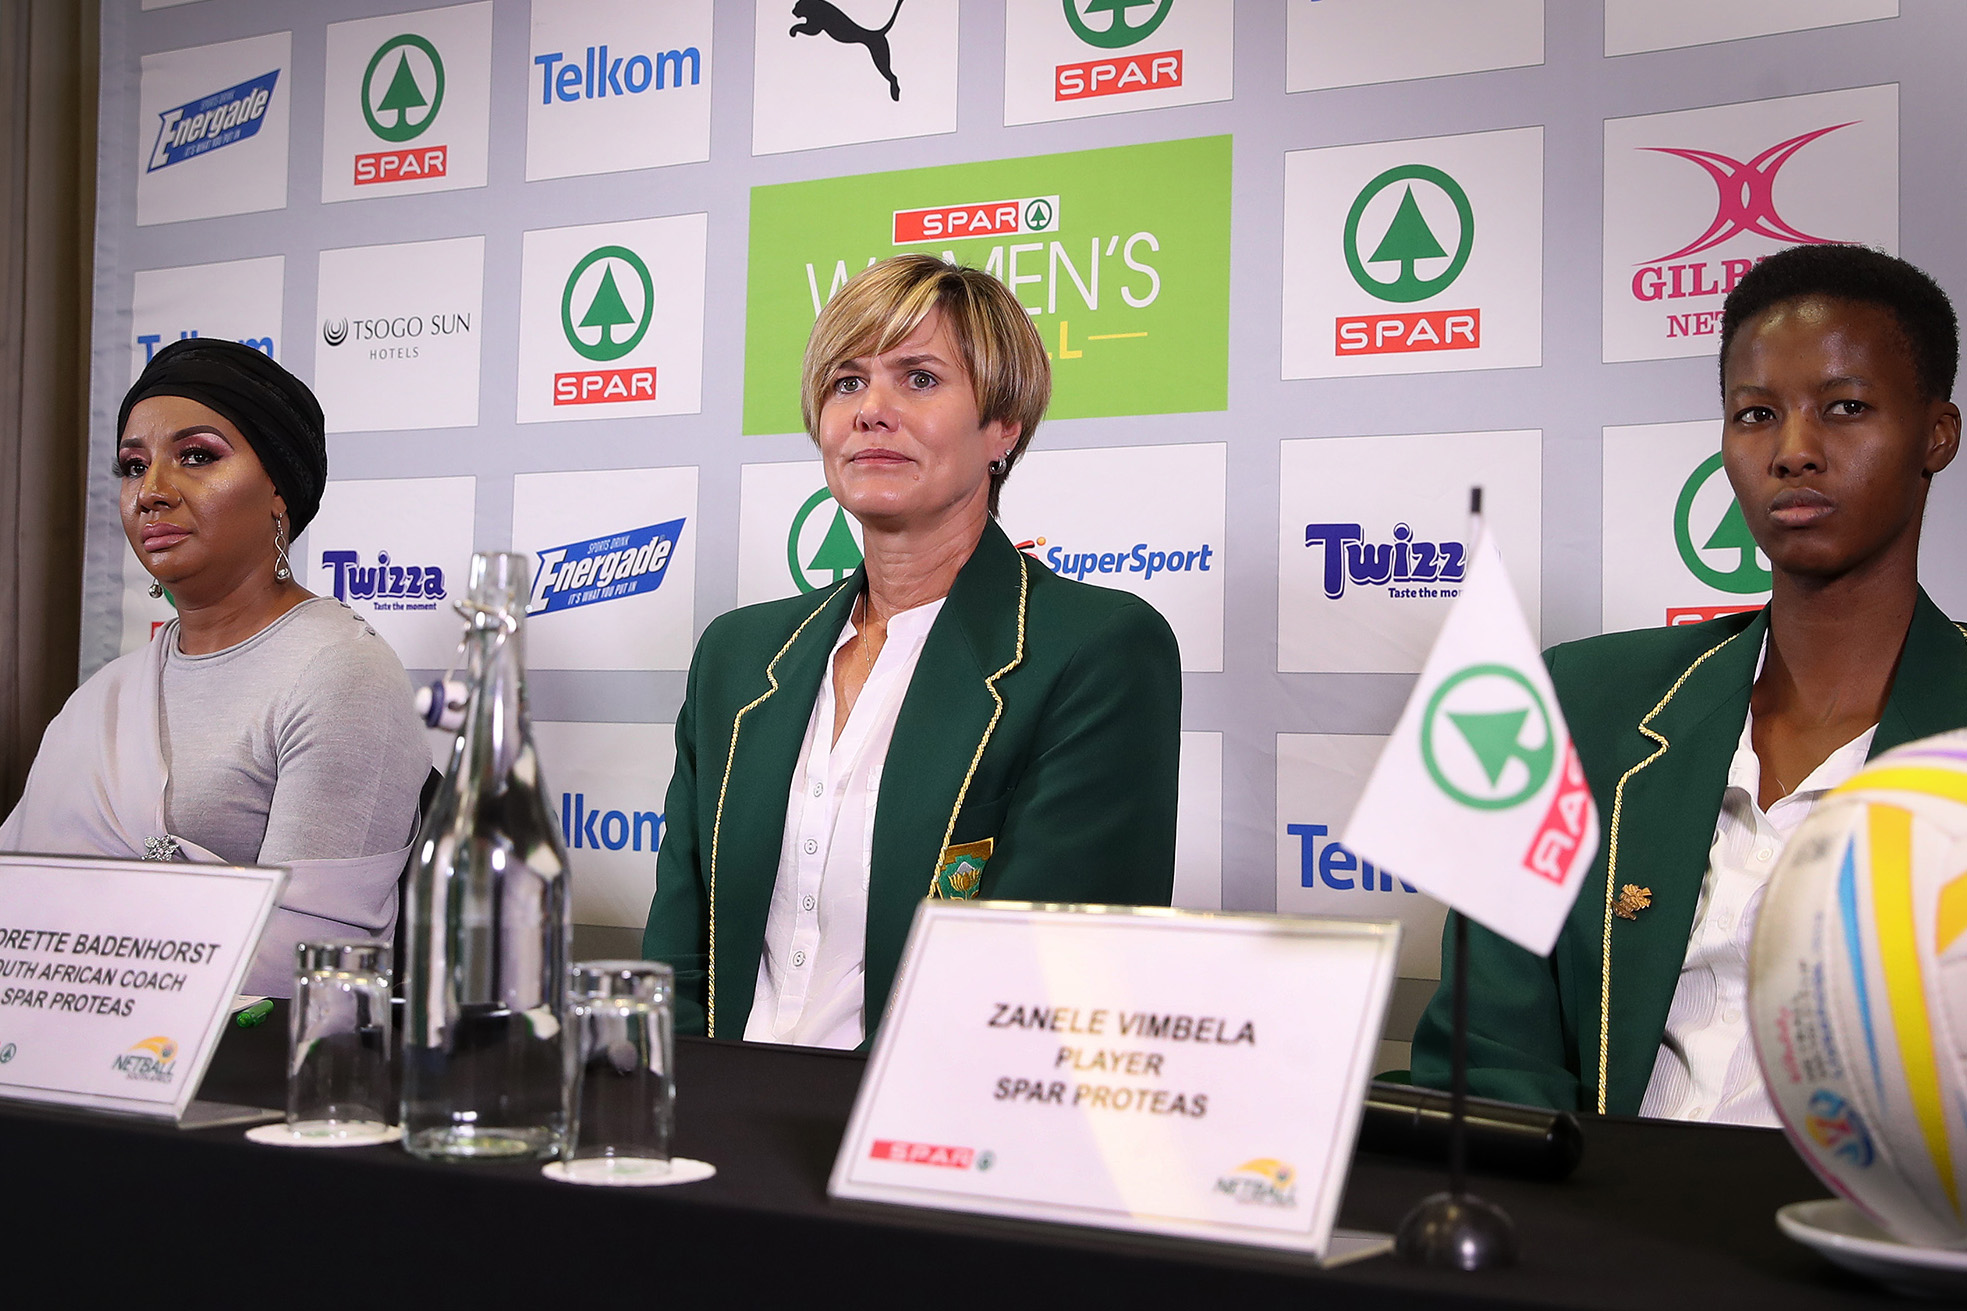 22 May 2019: From left, Netball SA president Cecilia Molokwane, coach Dorette Badenhorst and South African netball player Zanele Vimbela during the Spar Proteas team announcement for the 2019 Netball World Cup. (Photograph by Reg Caldecott/Gallo Images)